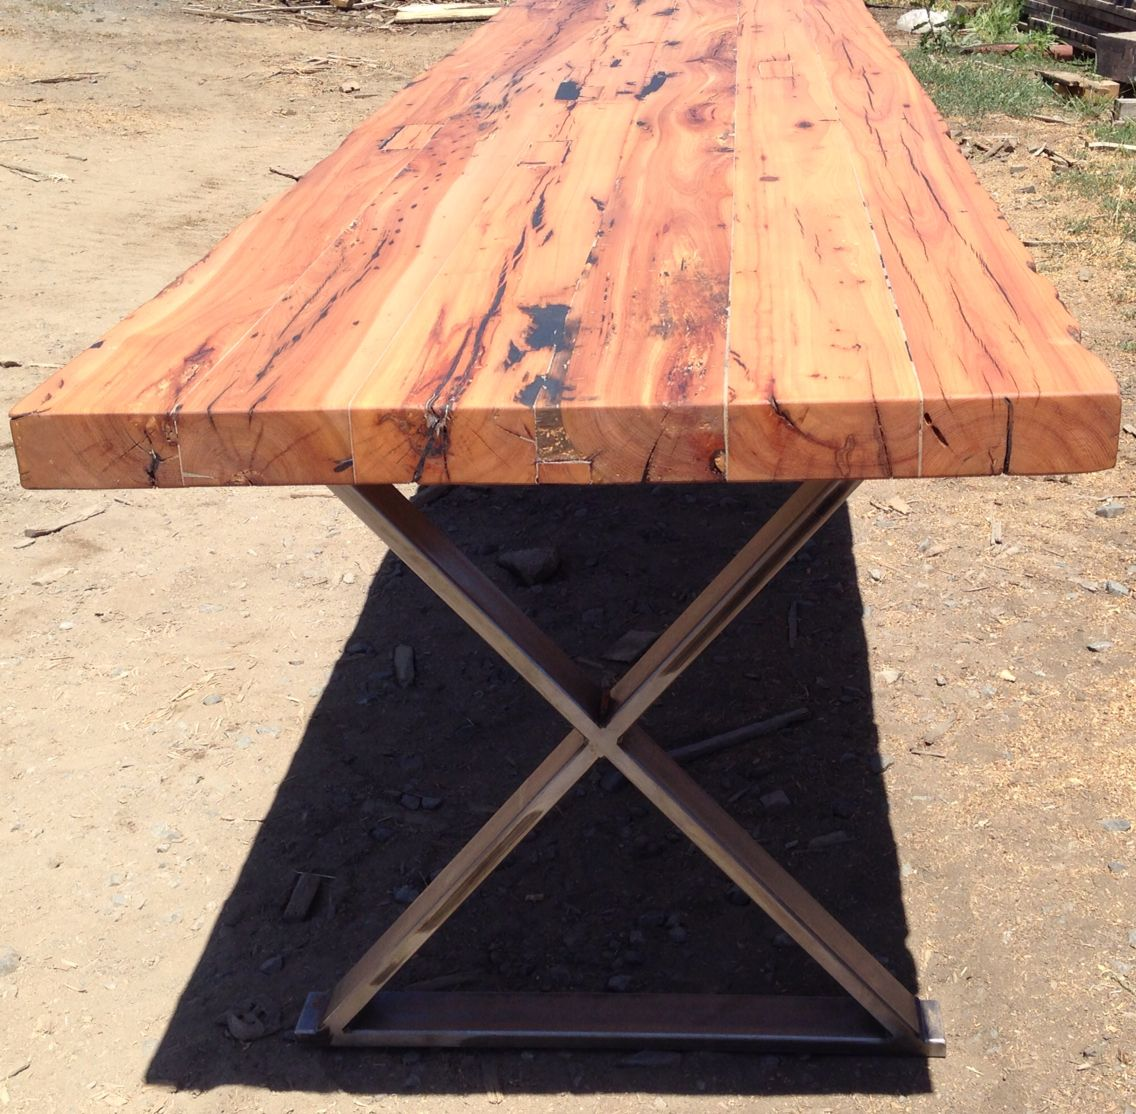 Reclaimed Wood Community Table For Bandidos Restaurant San Francisco